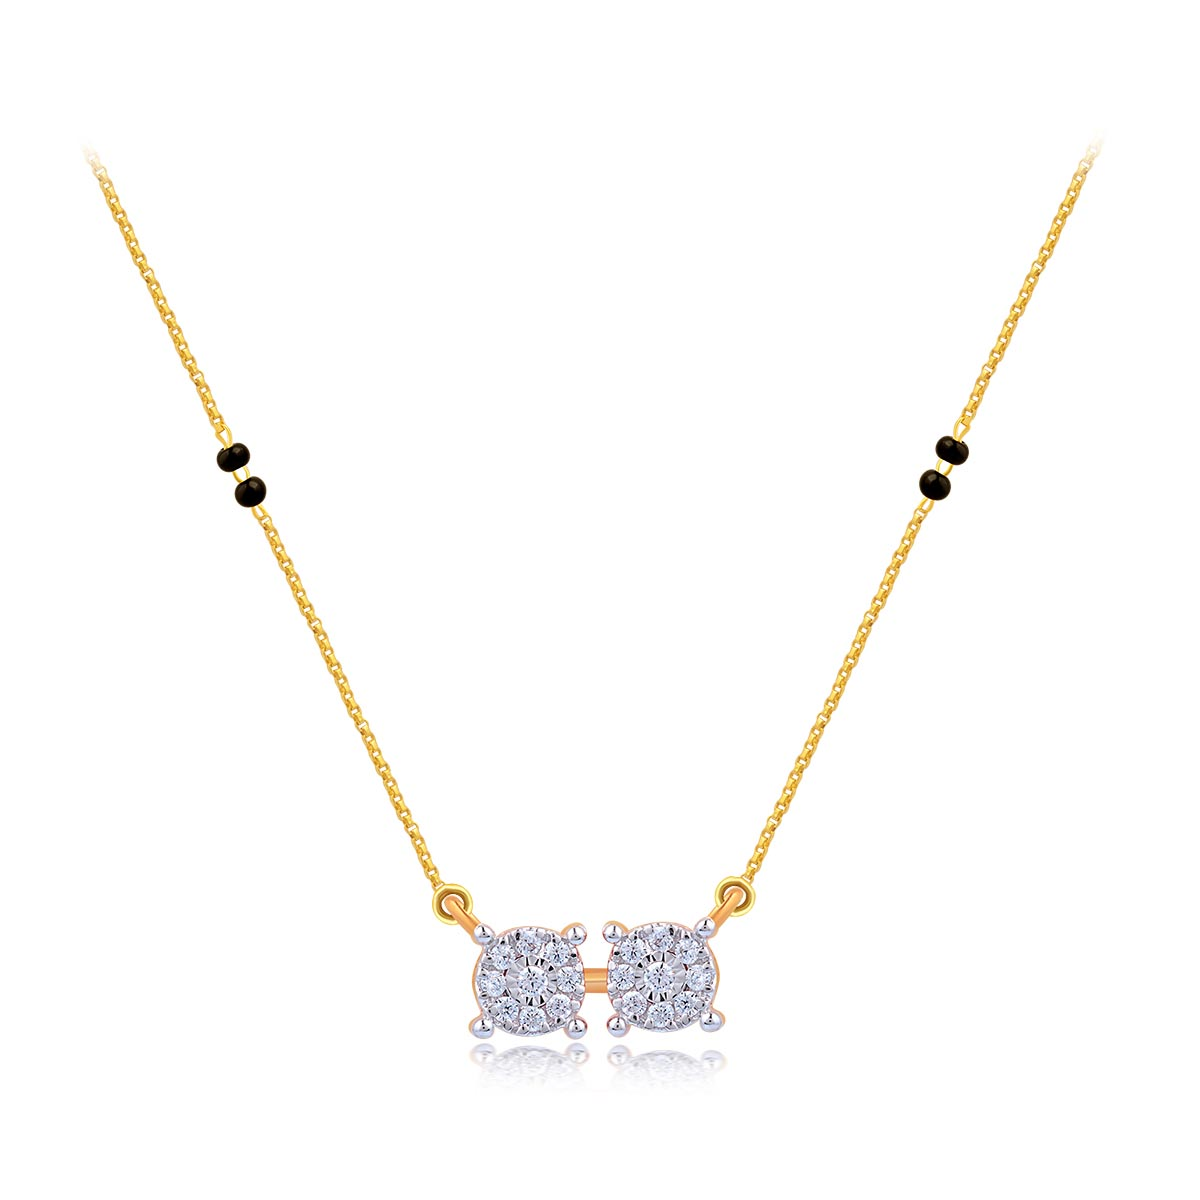 The Dawn Mangalsutra Pendant